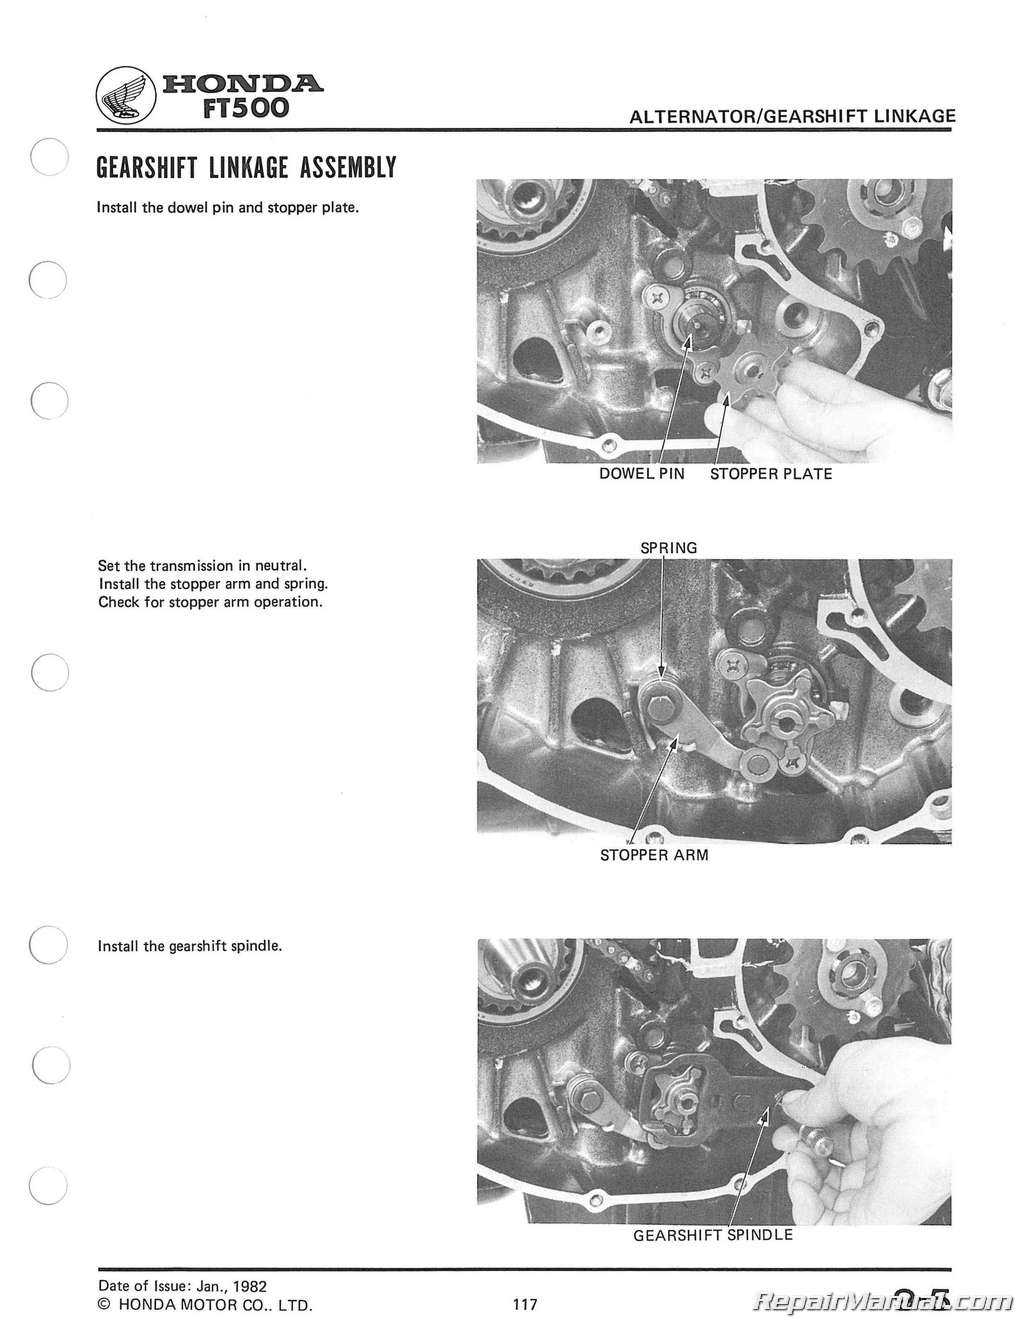 Details About 1982 1983 Honda Ft500 Ascot Motorcycle Service Manual 61mc801 Cb450t Electrical Wiring Diagram Pages From Page 3